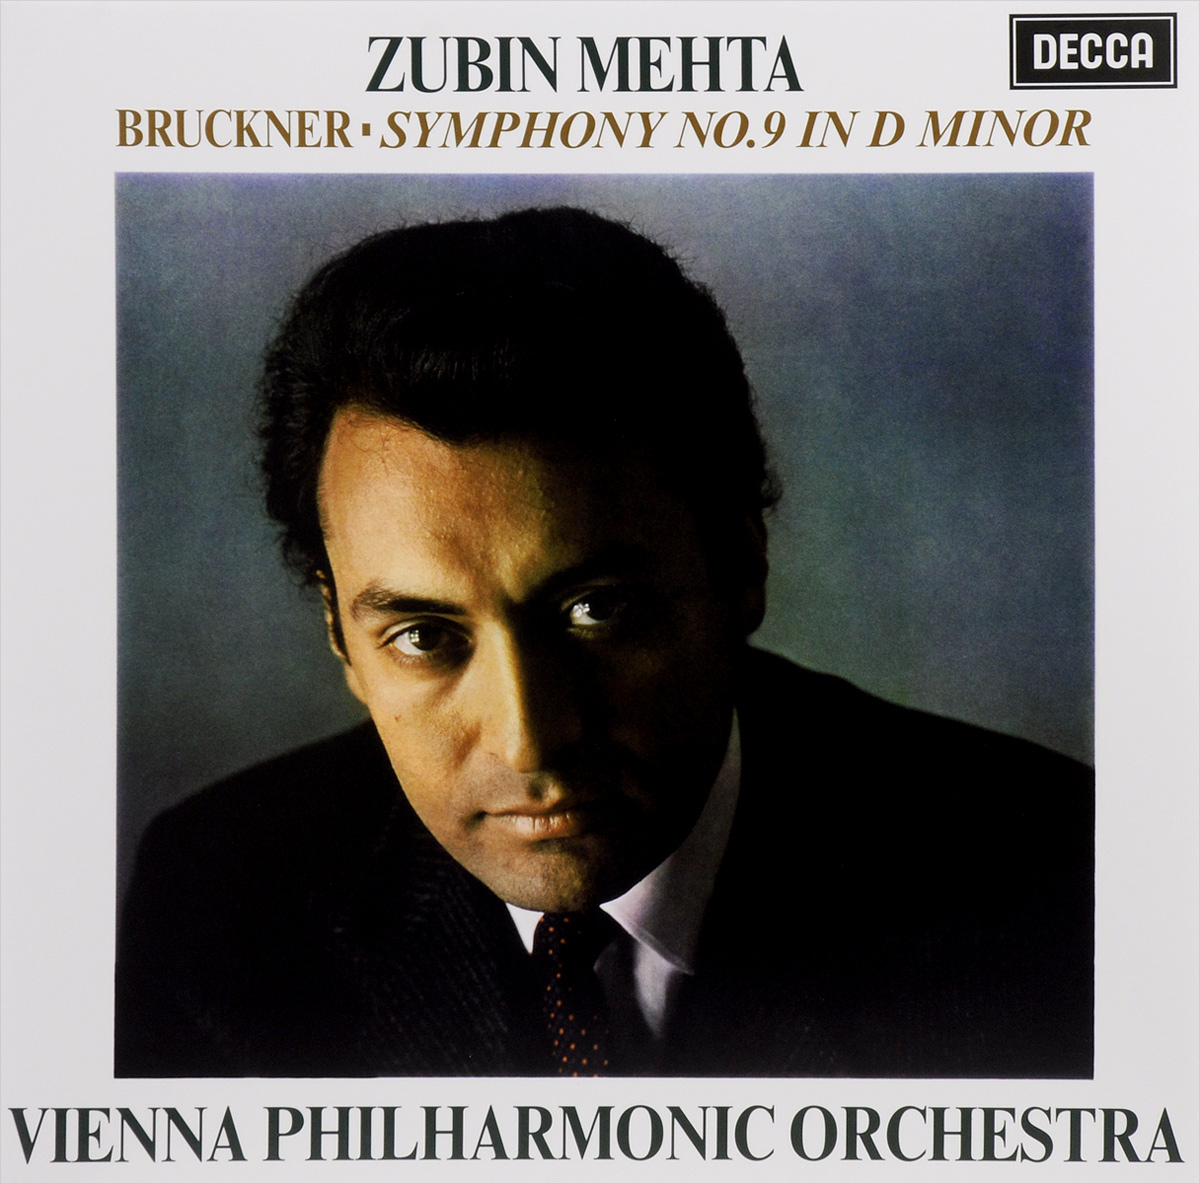 Vienna Philharmonic Orchestra,Зубин Мета Zubin Mehta. Bruckner. Symphony No. 9 In D Minor (LP) los angeles philharmonic orchestra gustav holst los angeles philharmonic orchestra zubin mehta the planets lp